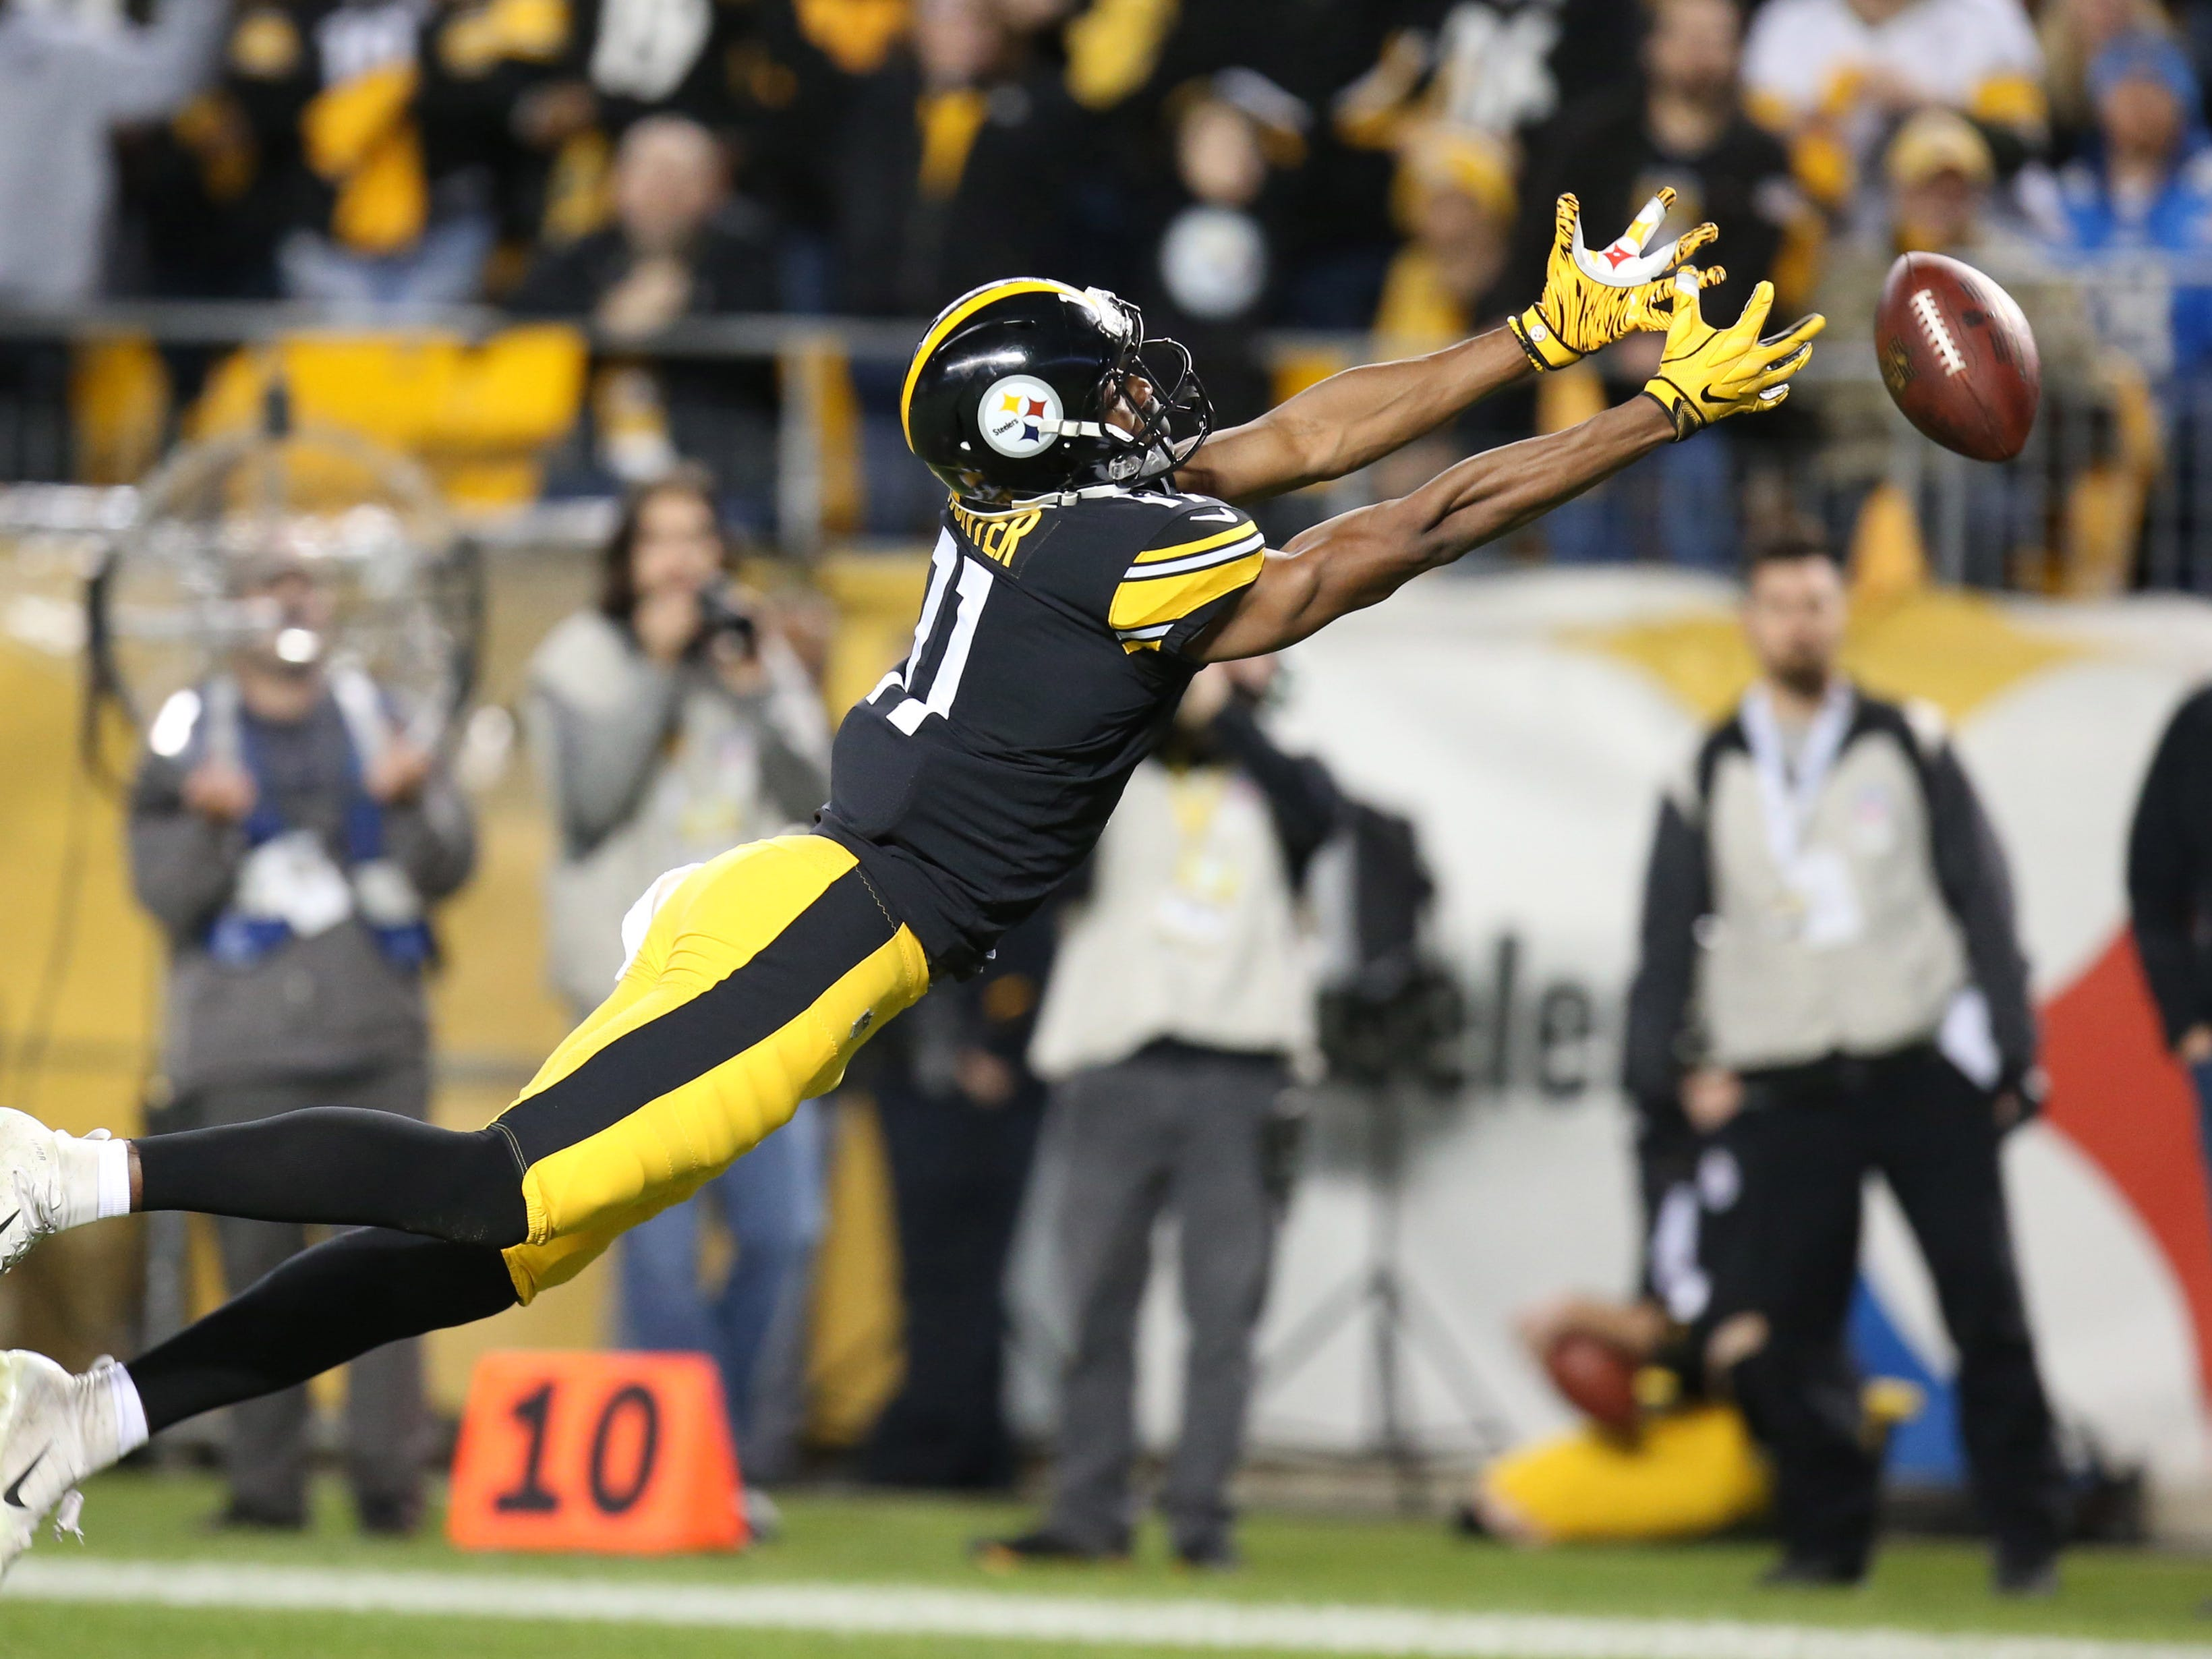 Steelers wide receiver Justin Hunter dives but can't make a catch against the Chargers.